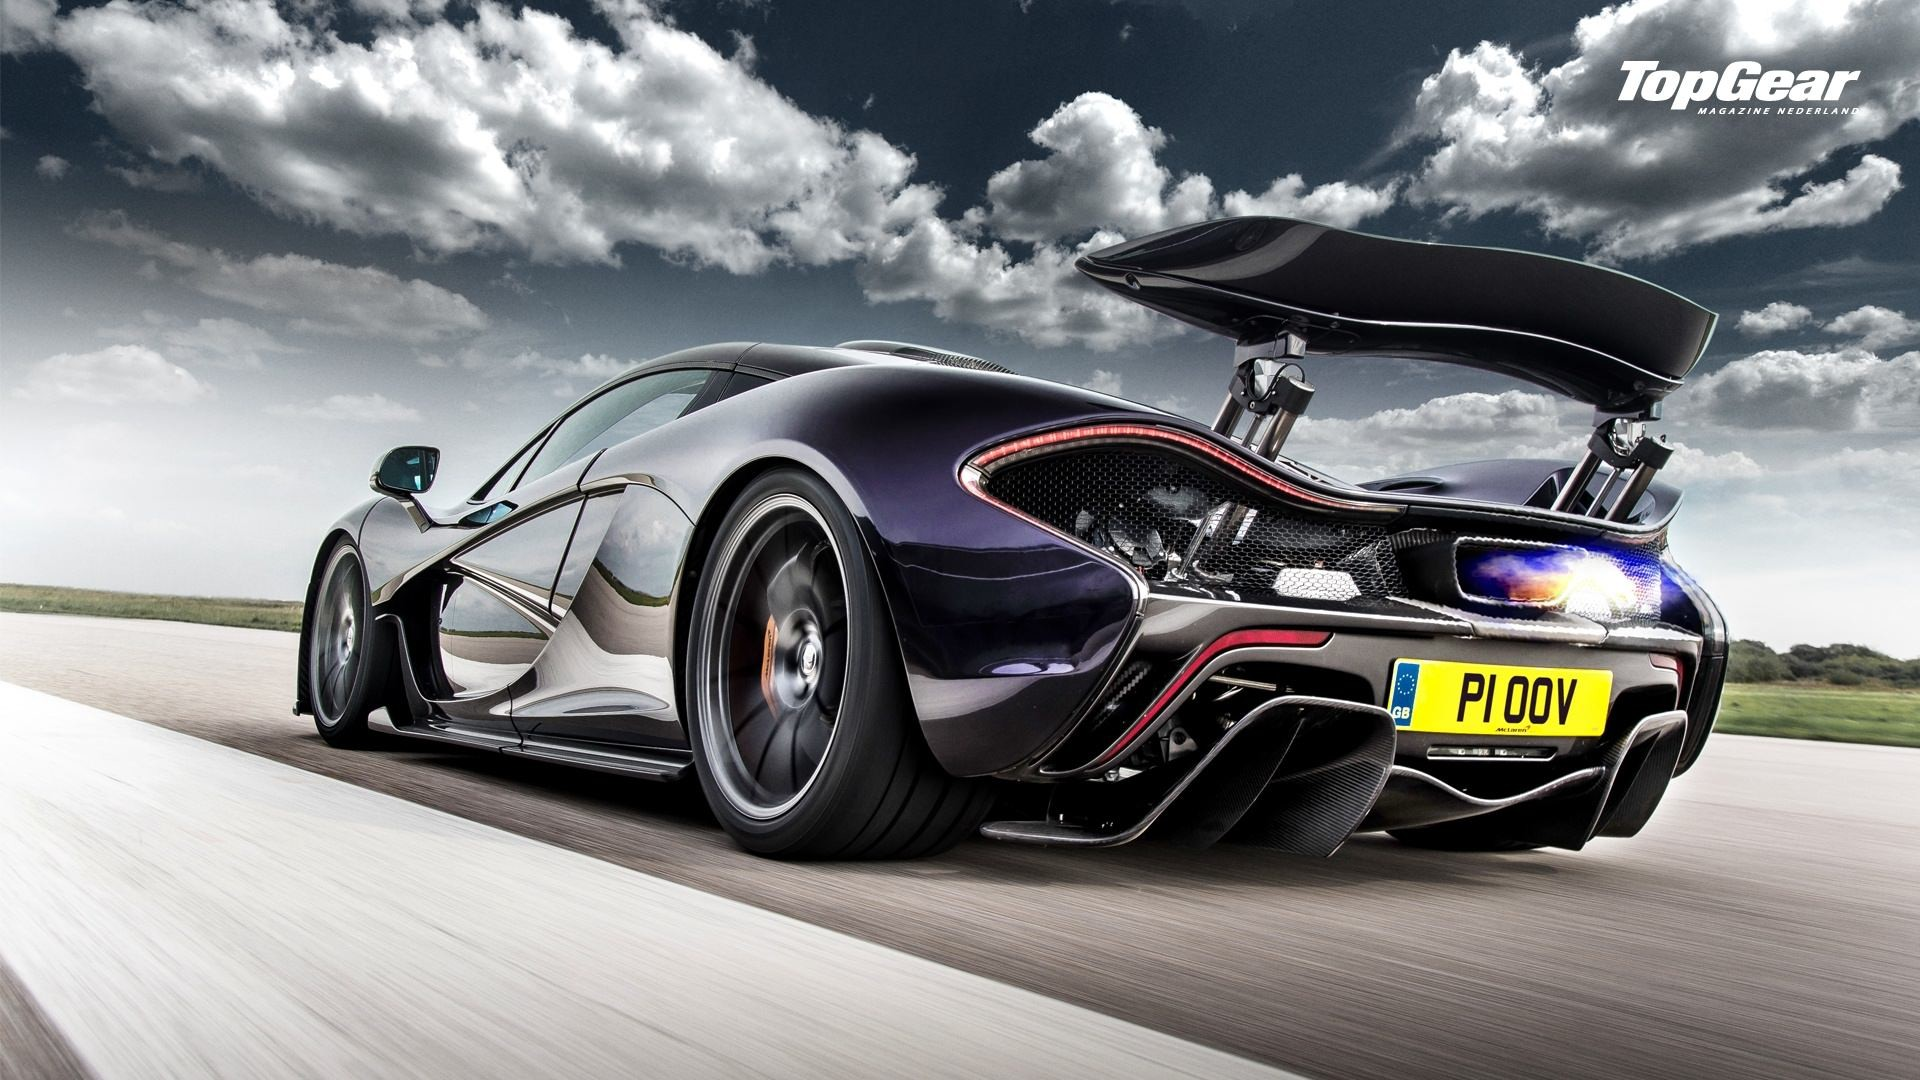 1920x1080 ... Wallpapers The Stig Supercar Collection -  - Full HD 16/9 .